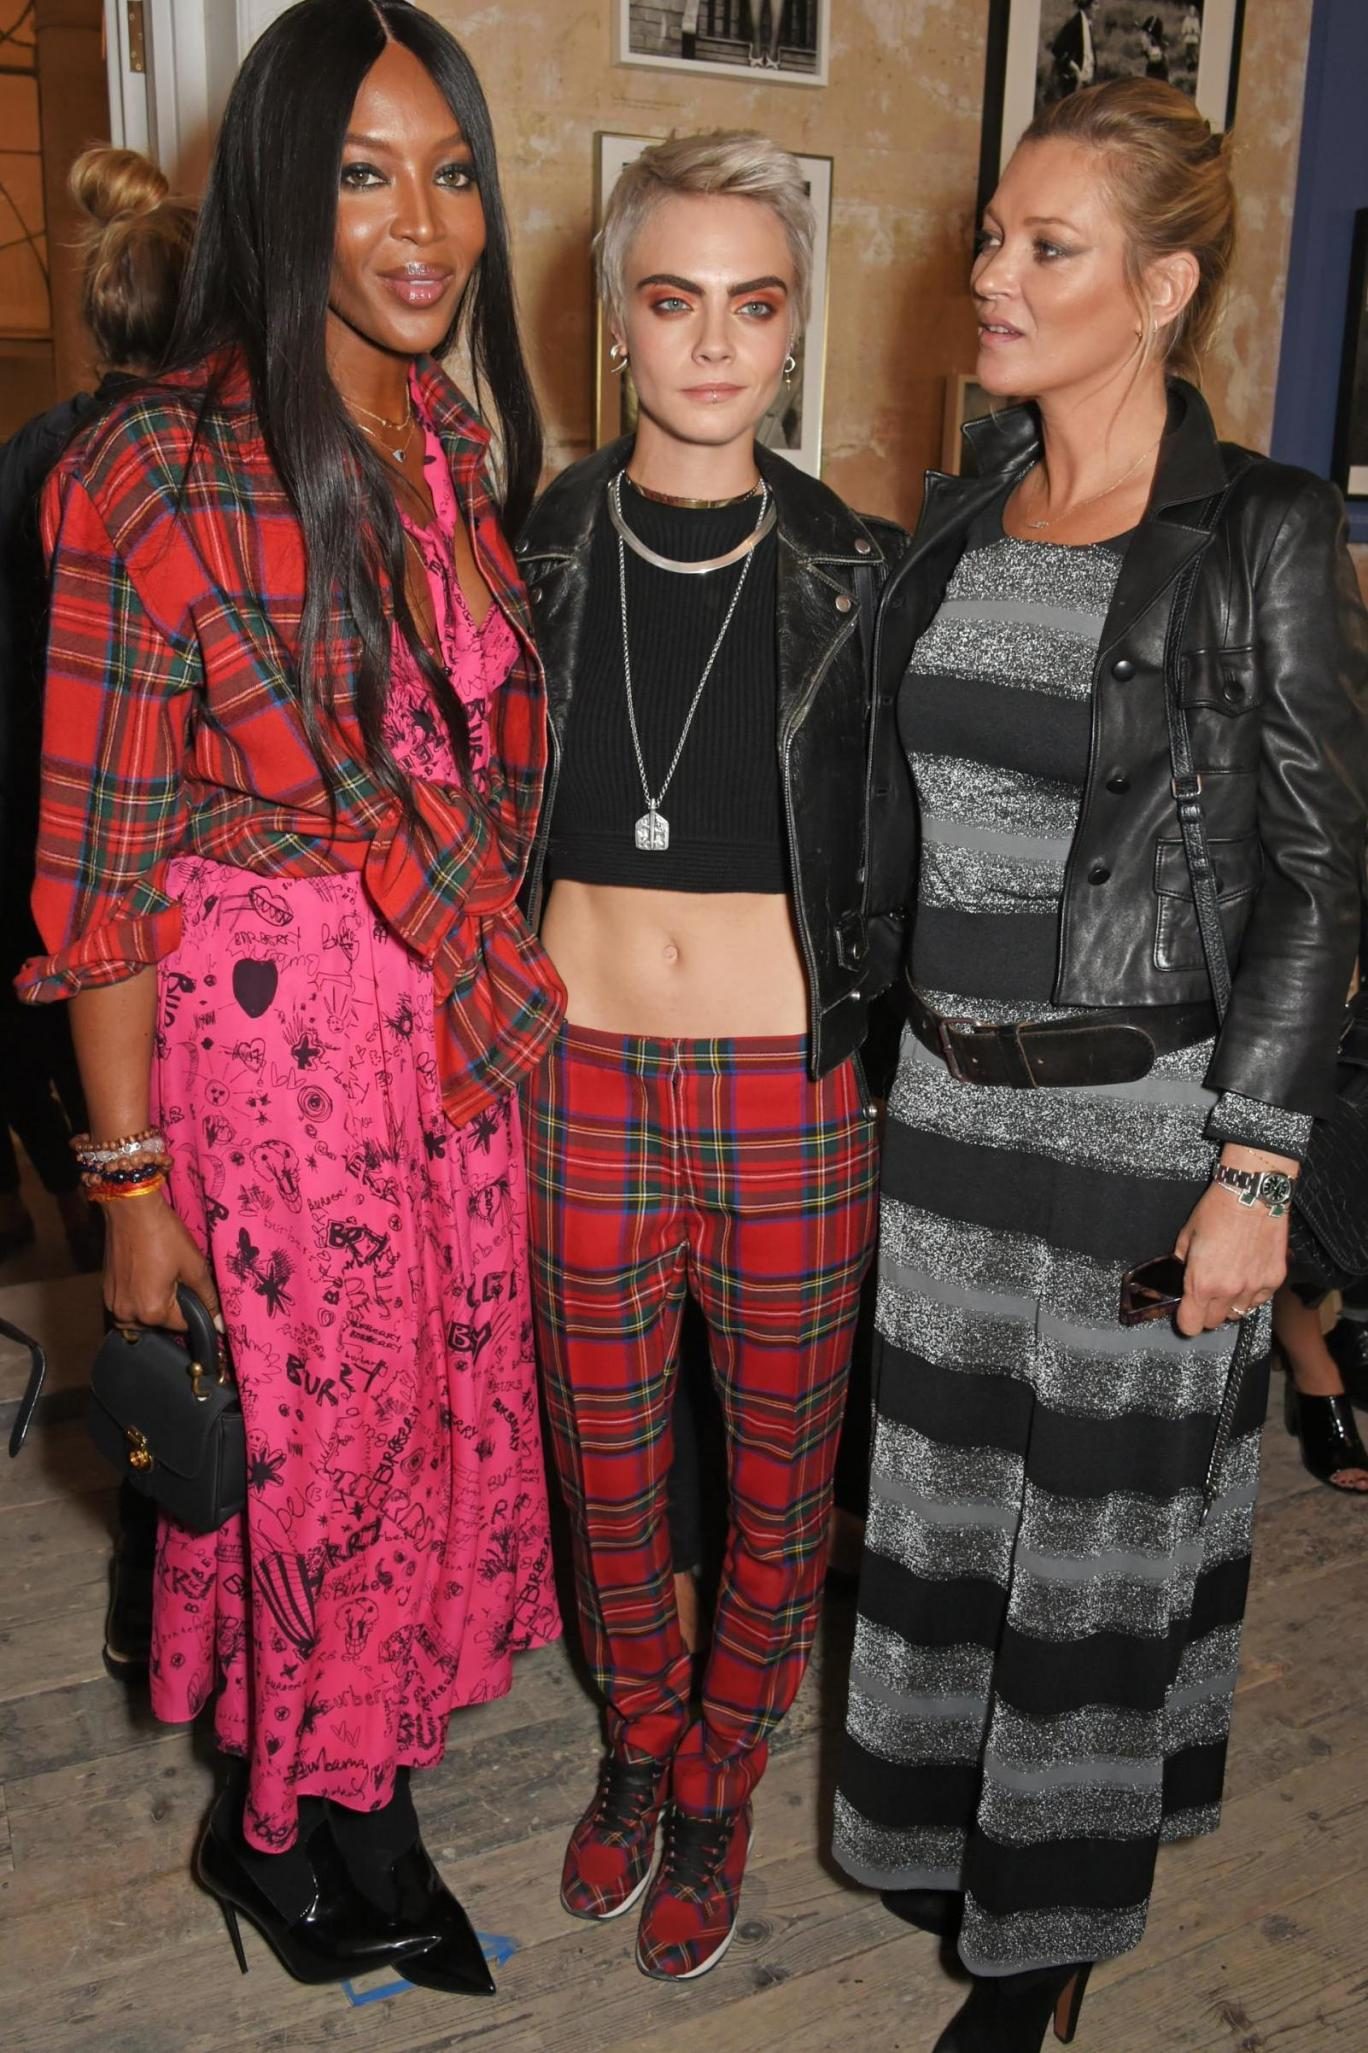 Burberry Cara Delevingne Kate Moss Naomi Campbell LFW